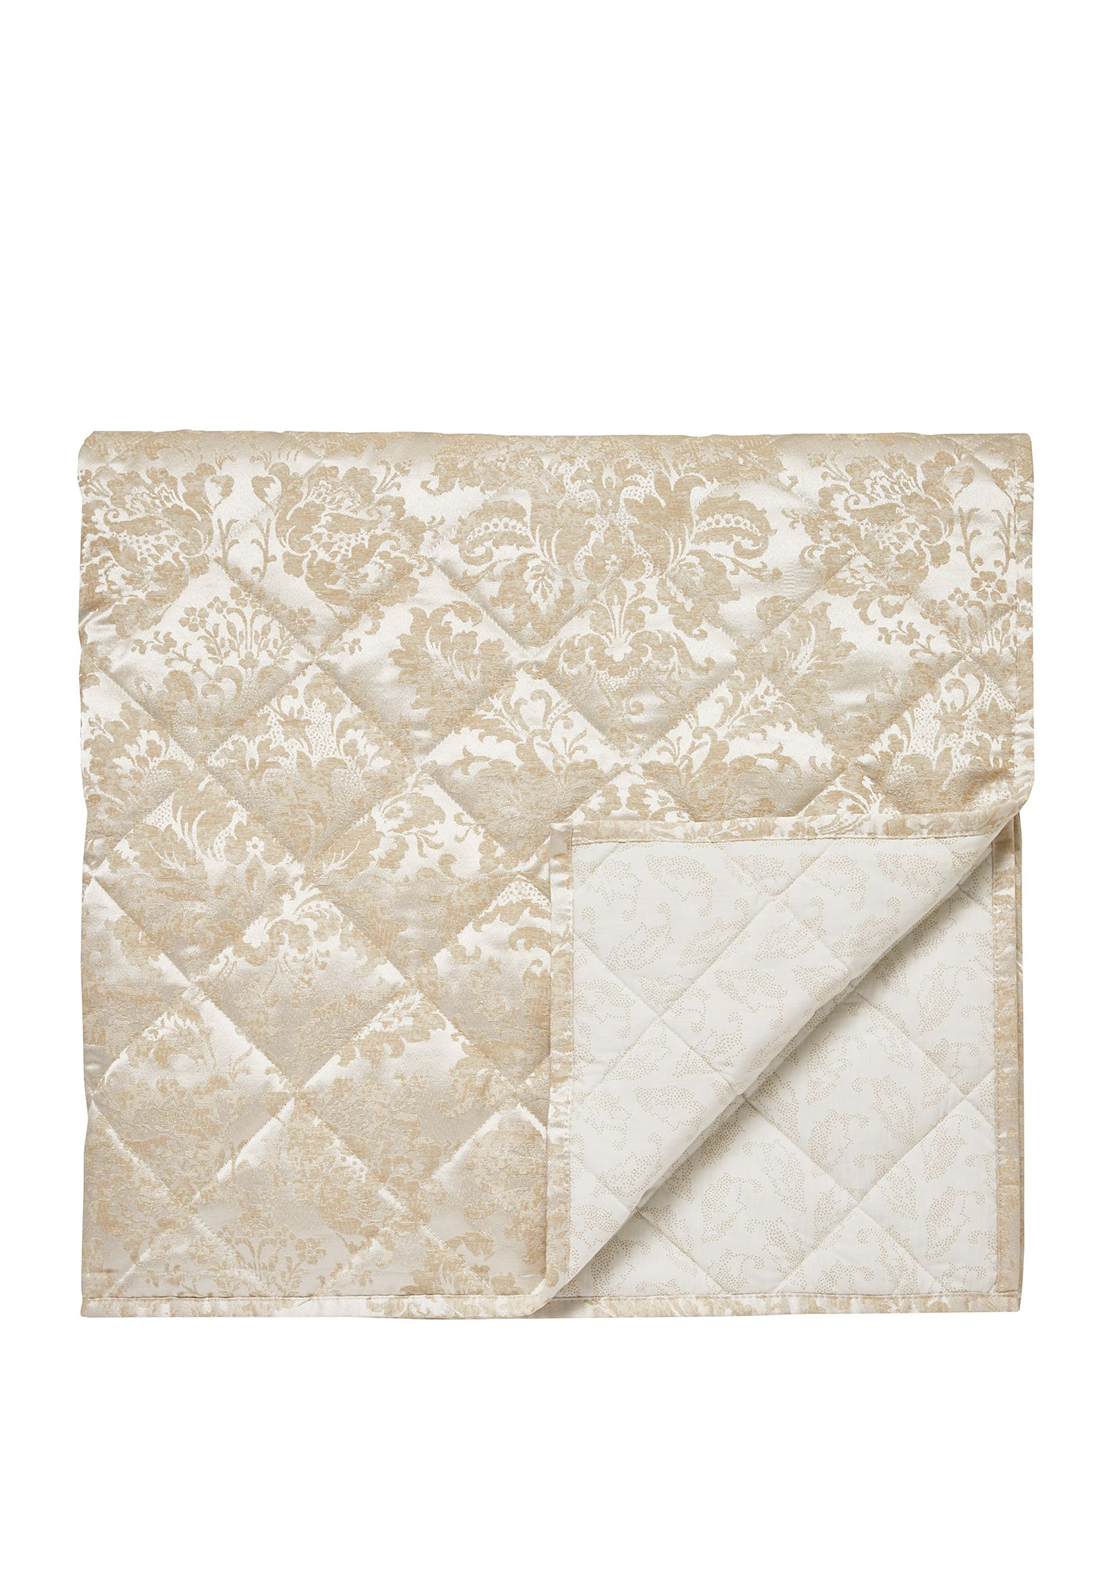 Sanderson Floriella Quilted Throw Oyster